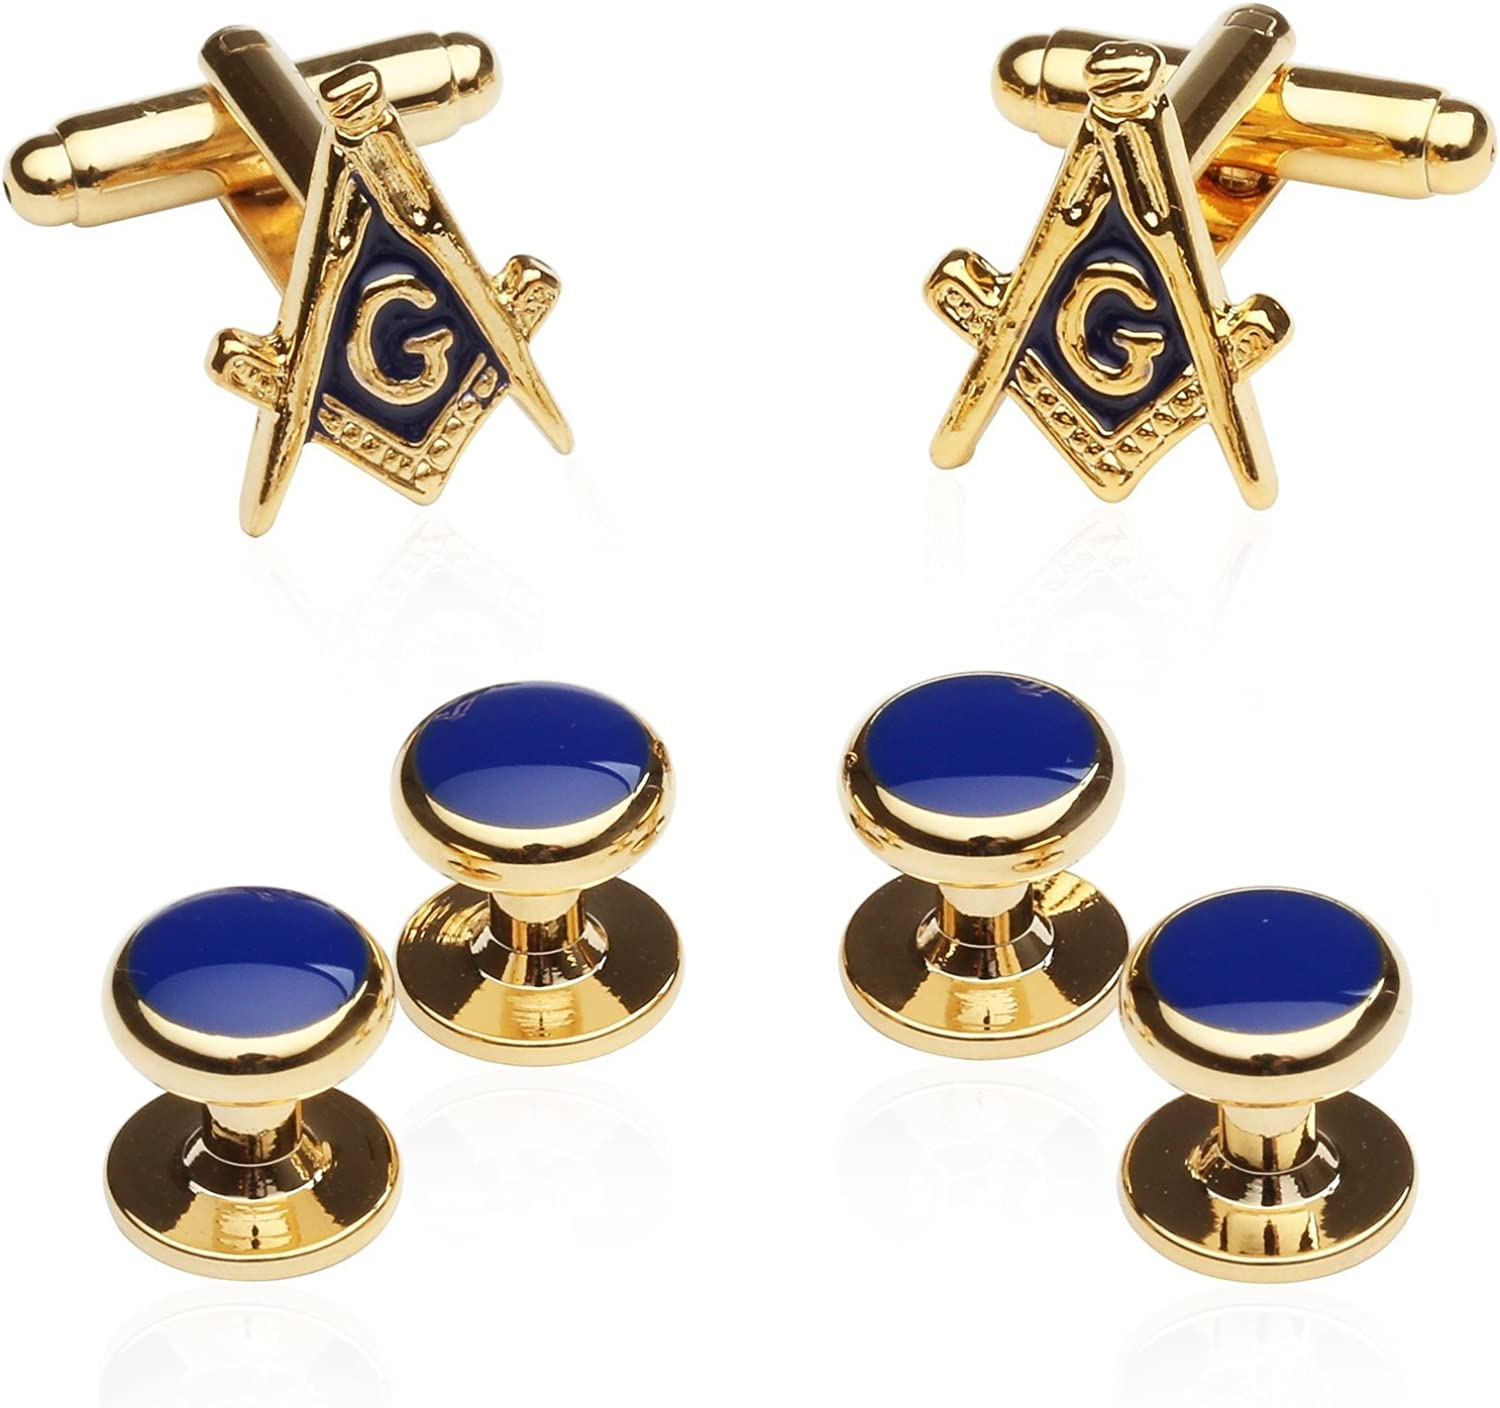 Men's Gold Masonic Tuxedo Formal Set Freemason Cuff Links and Studs Set with Travel Presentation Gift Box Tux Shirt Accessories Attire Special Occasions